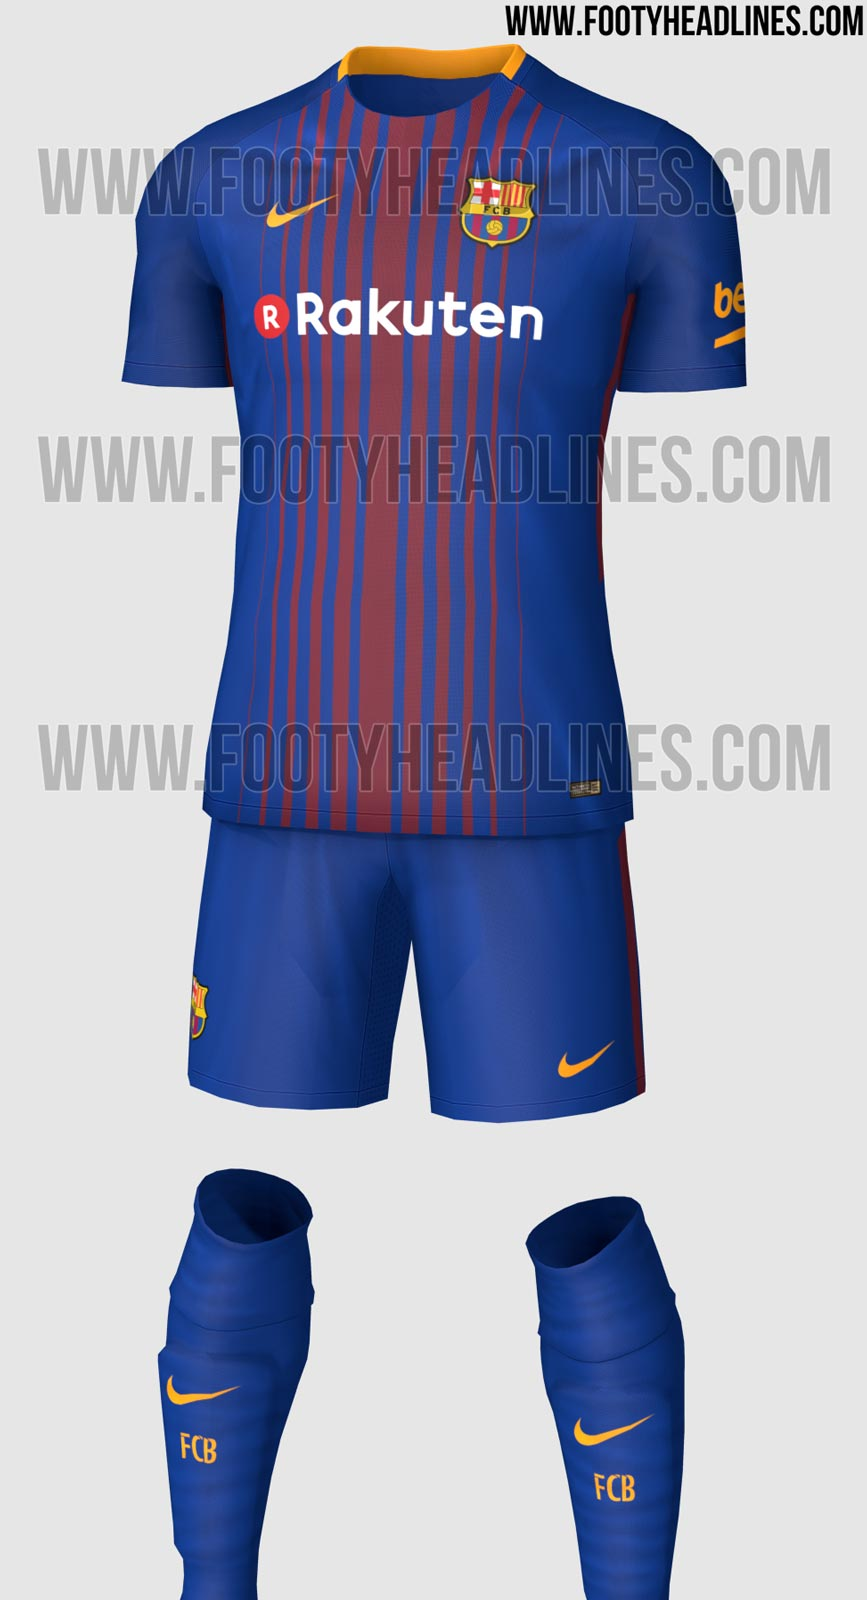 94dffbdc782 Barcelona's new kit has leaked, and it's extremely blue | JOE.co.uk